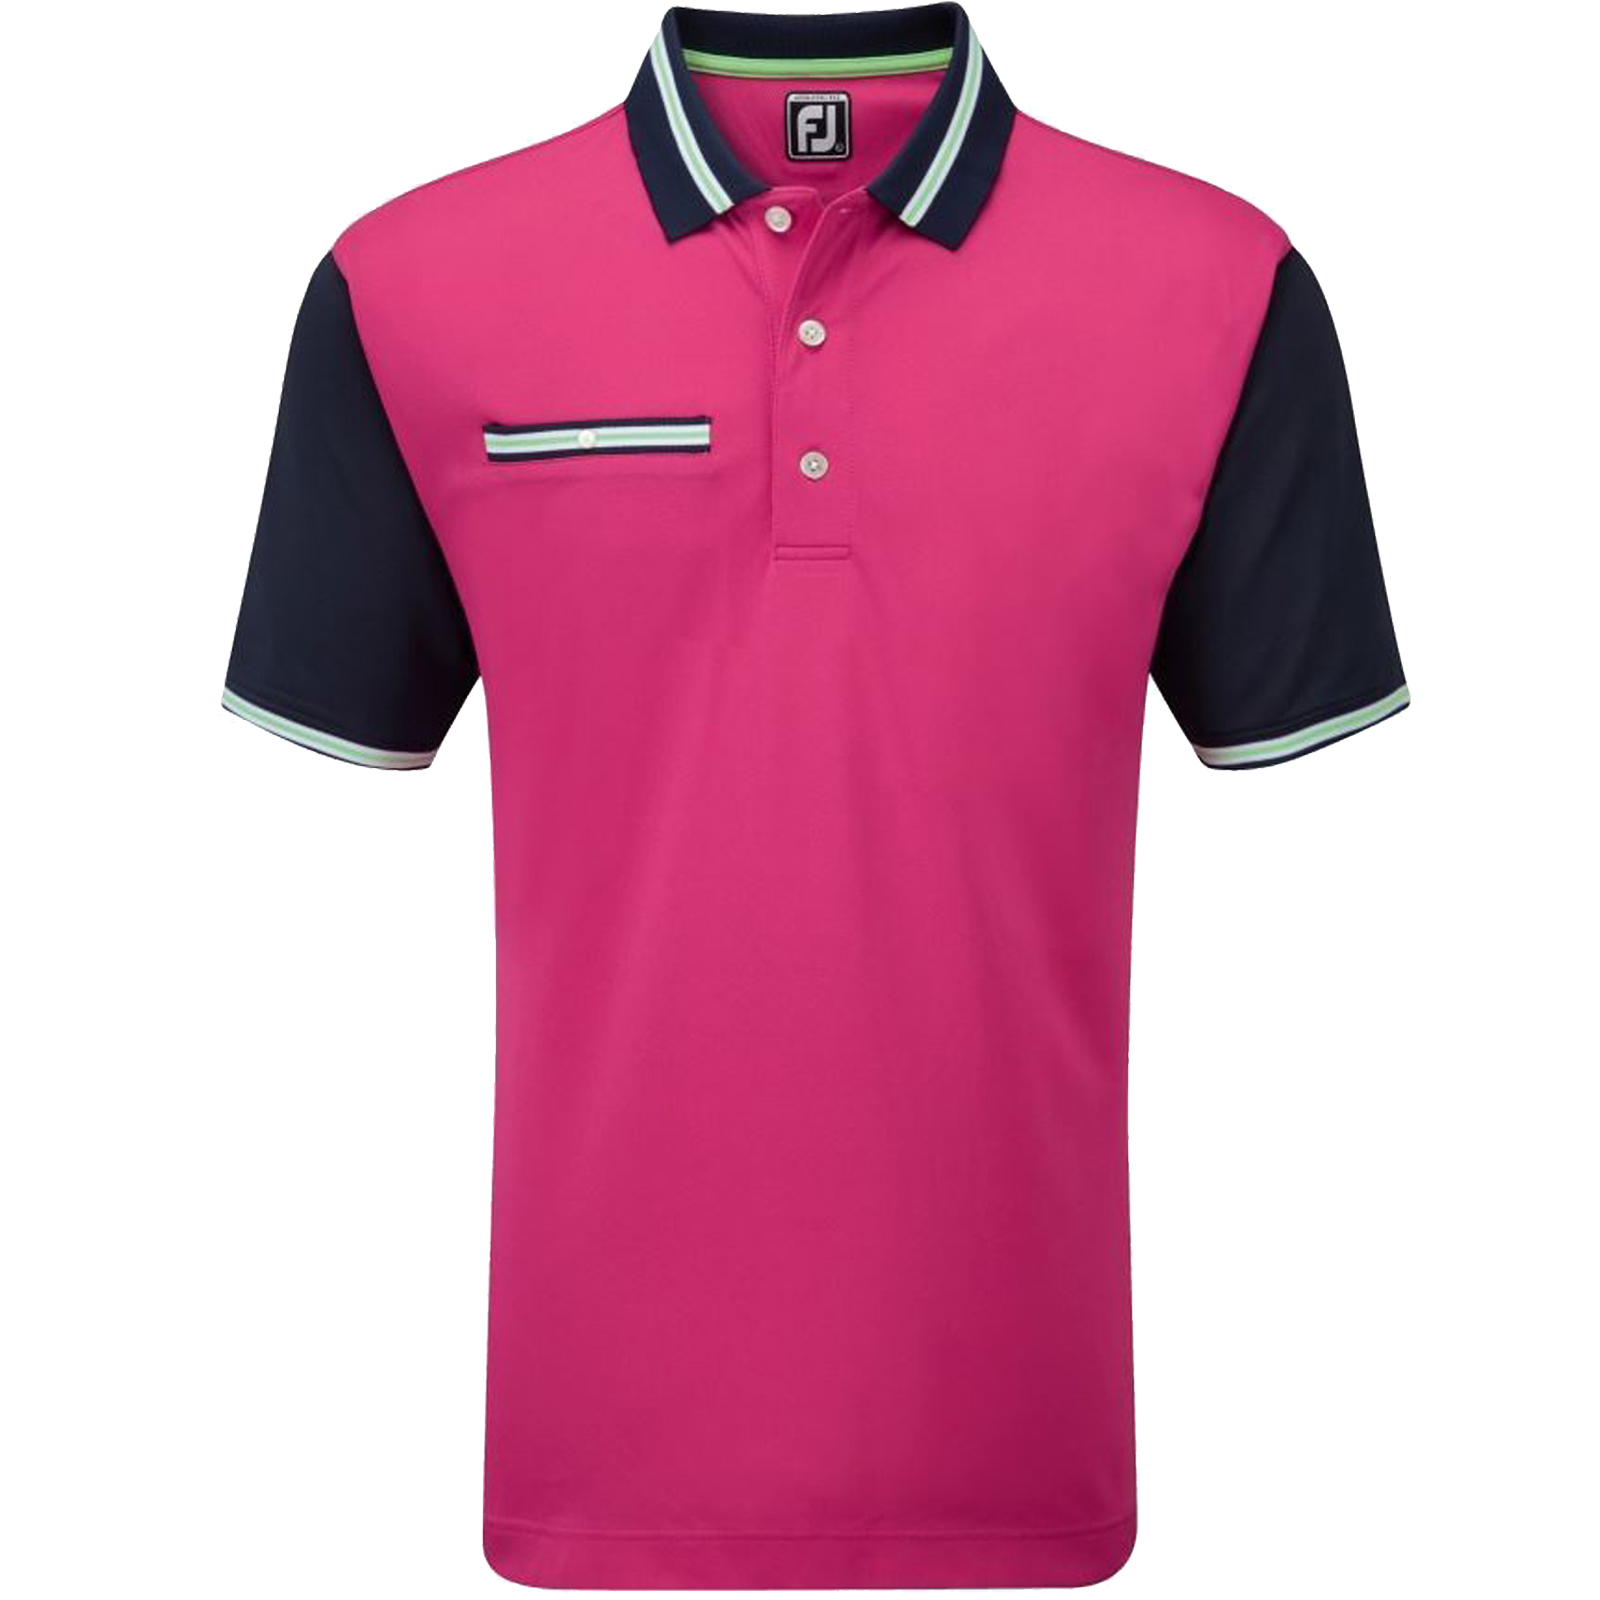 Footjoy 2017 clearance golf polo shirts loads of styles for Polo shirts clearance sale